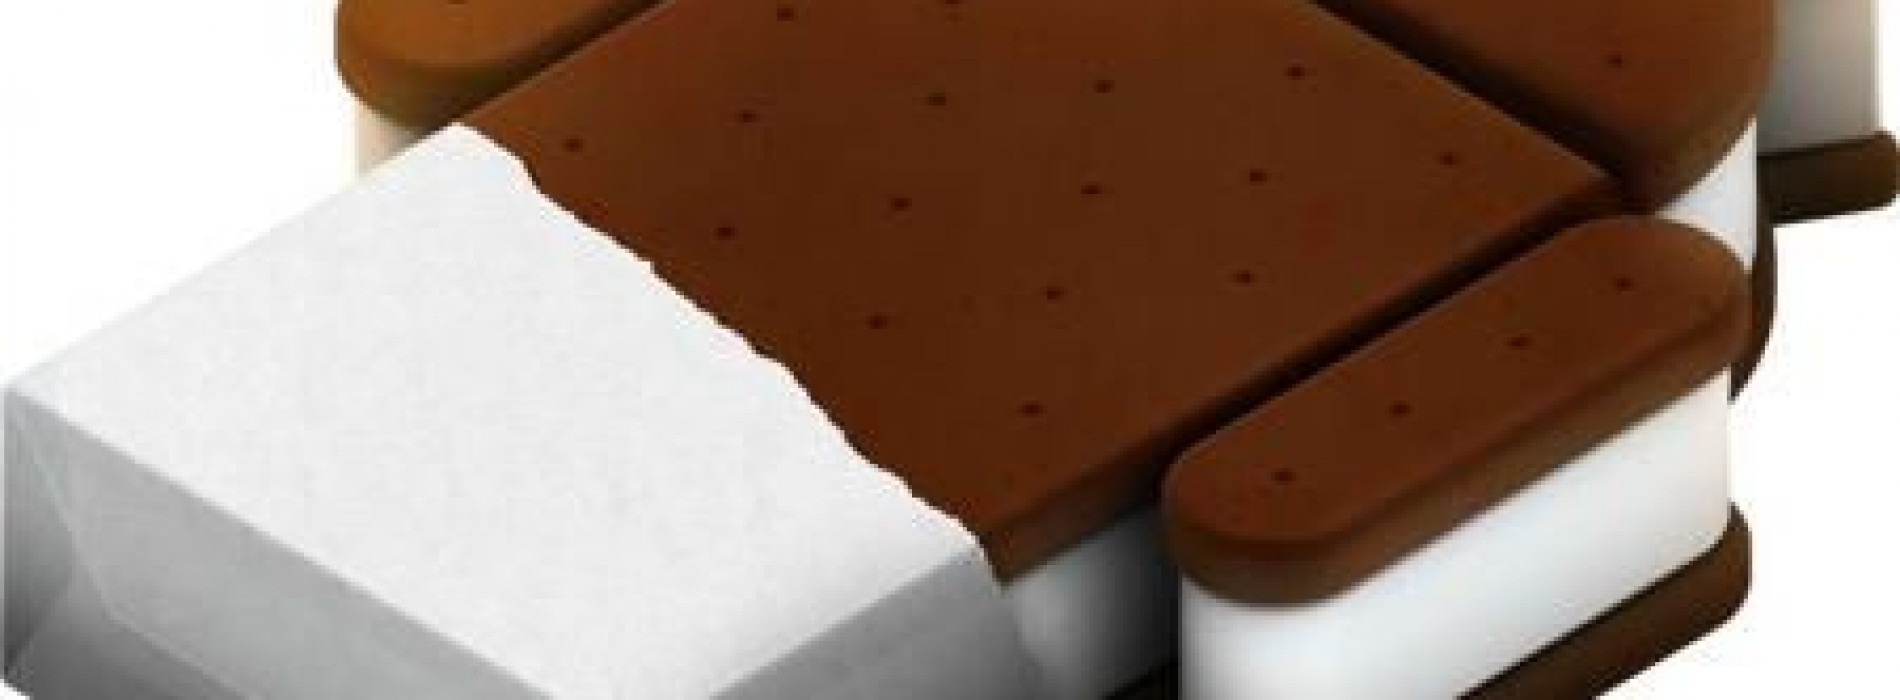 Ice Cream Sandwich Should Work on Gingerbread Handsets